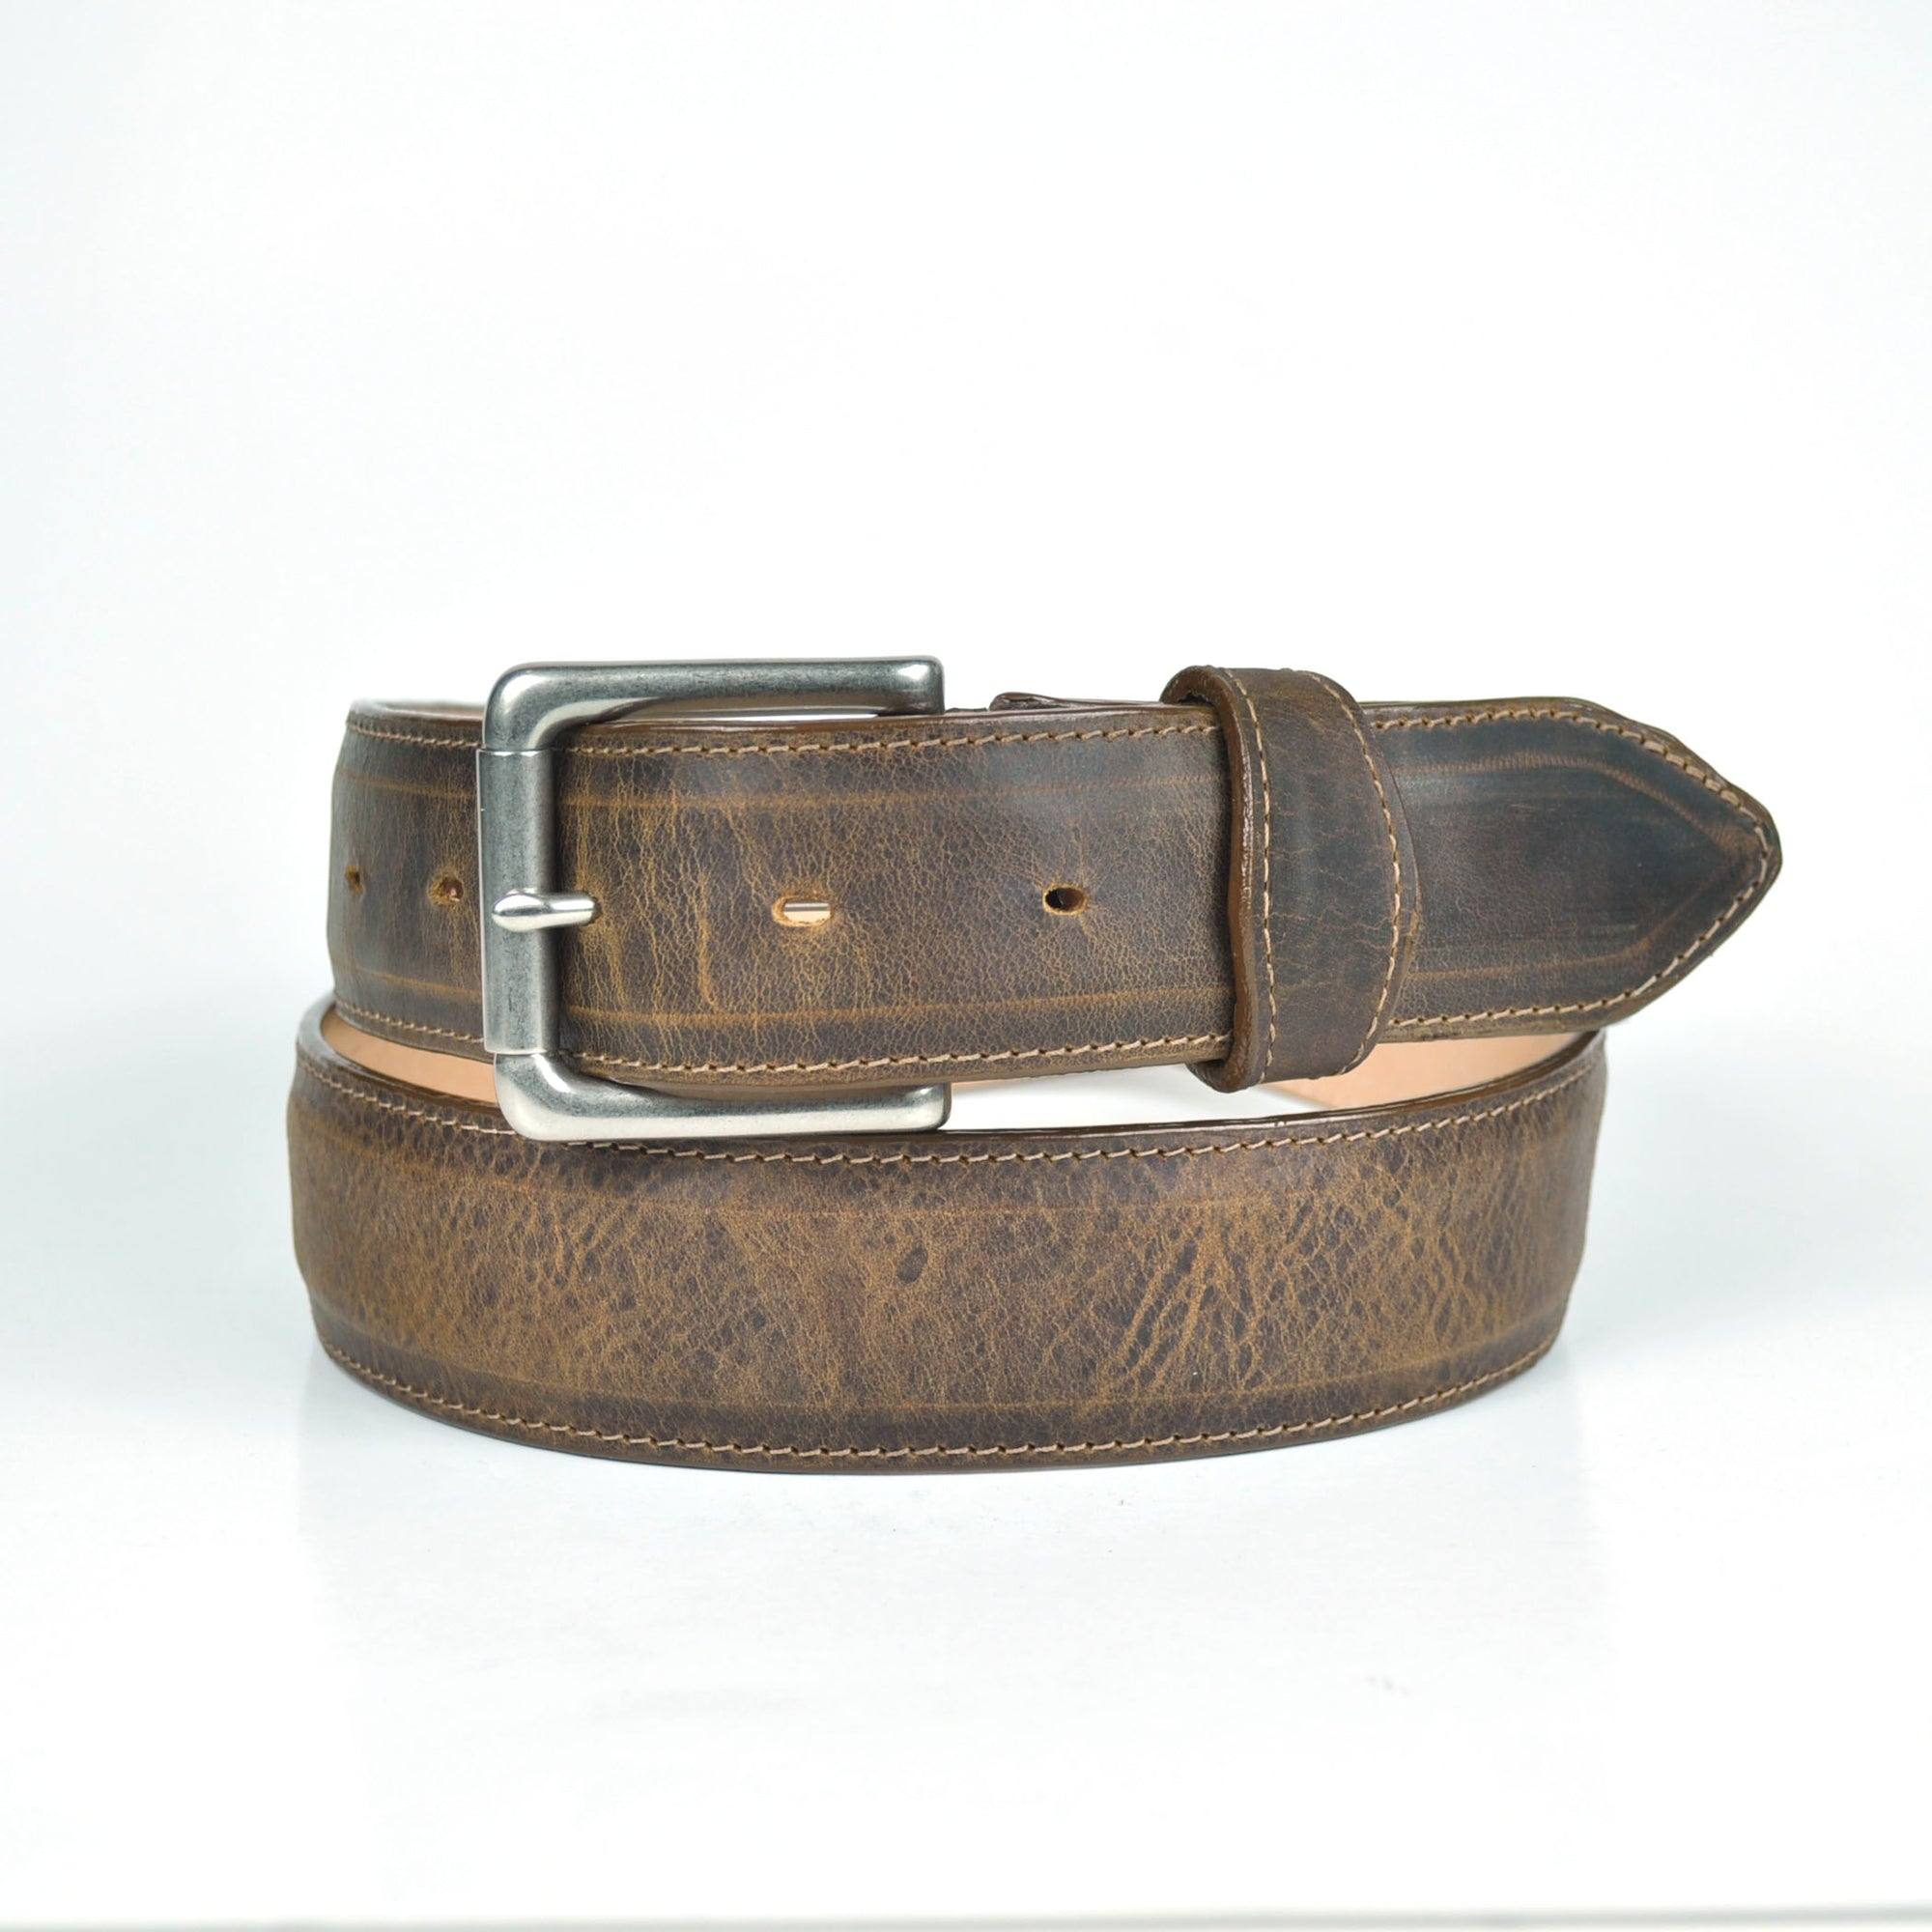 Gavel Men's Crazy Horse Leather Casual Belt - Encino Bronze